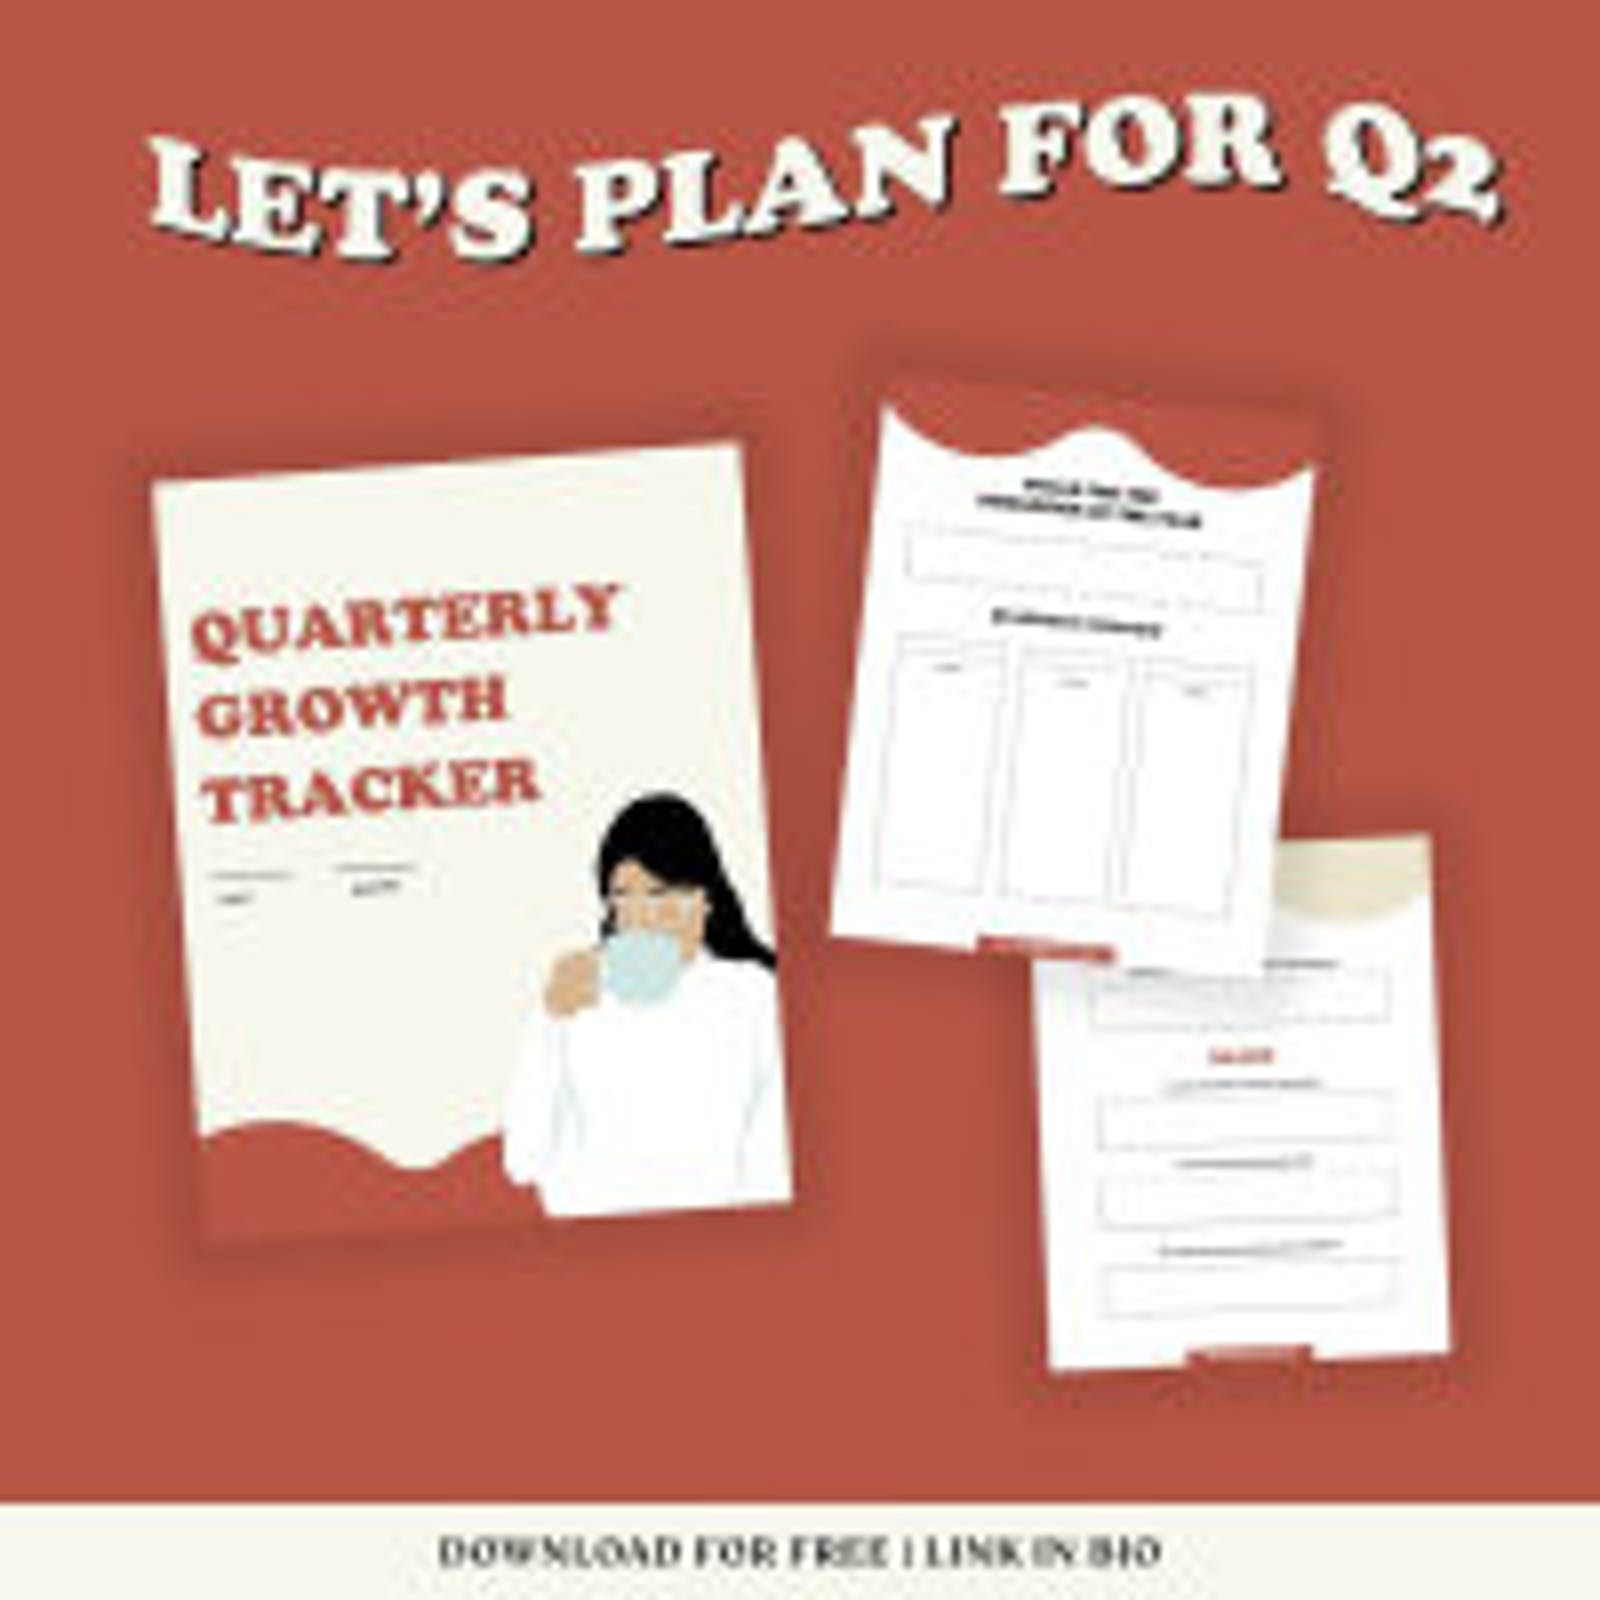 Download our Quarterly Growth Tracker